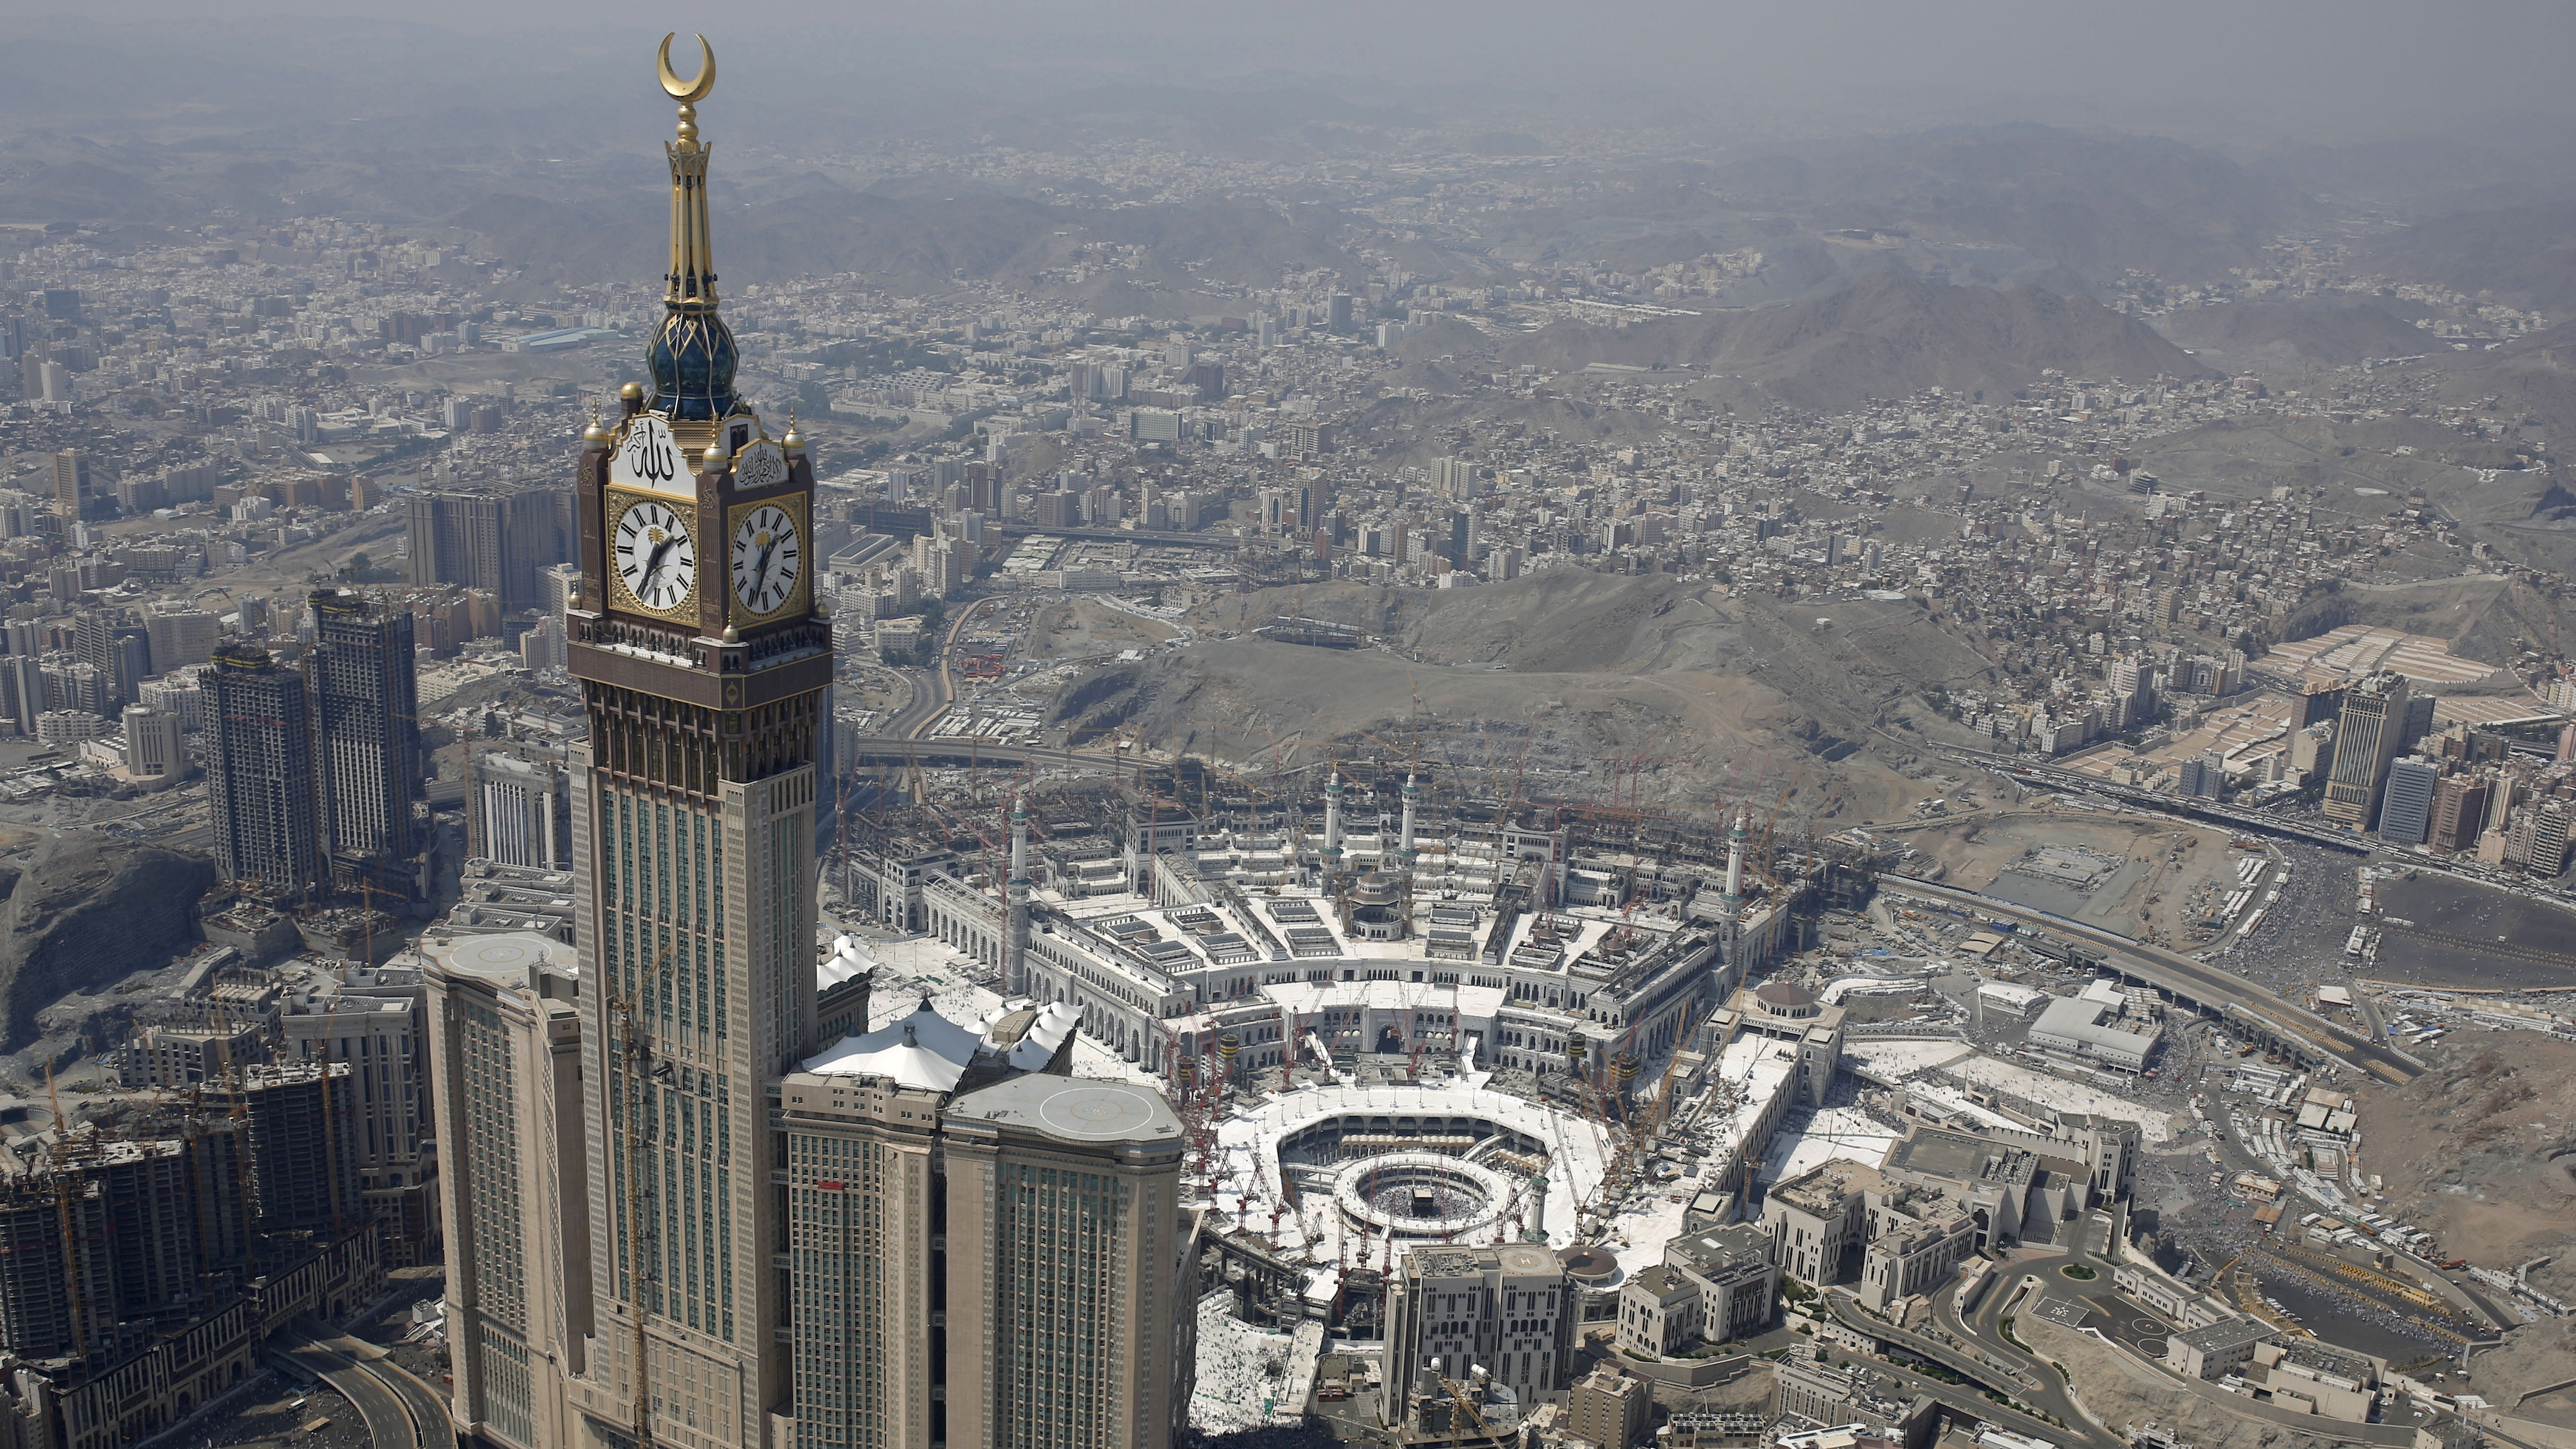 Mecca to allow entry from May 31 after 2-month coronavirus